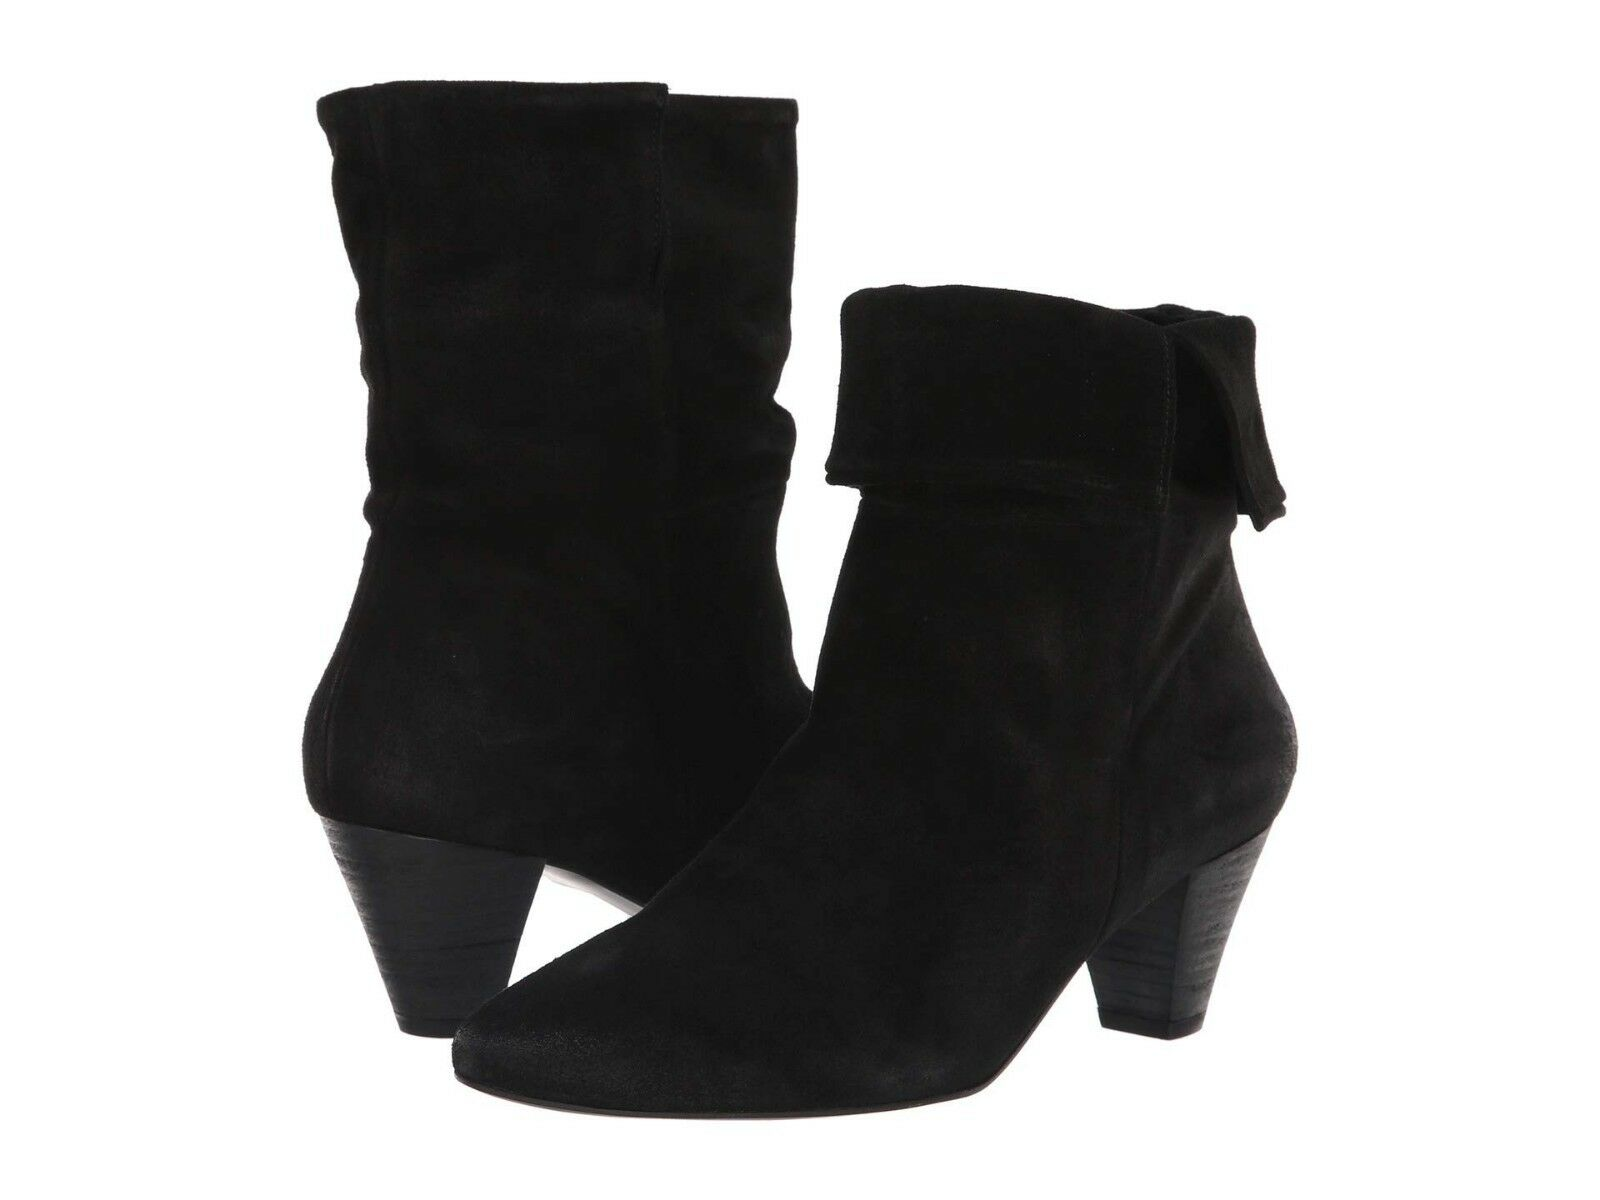 New in box Free People Adella Heel Bootie Retail   168